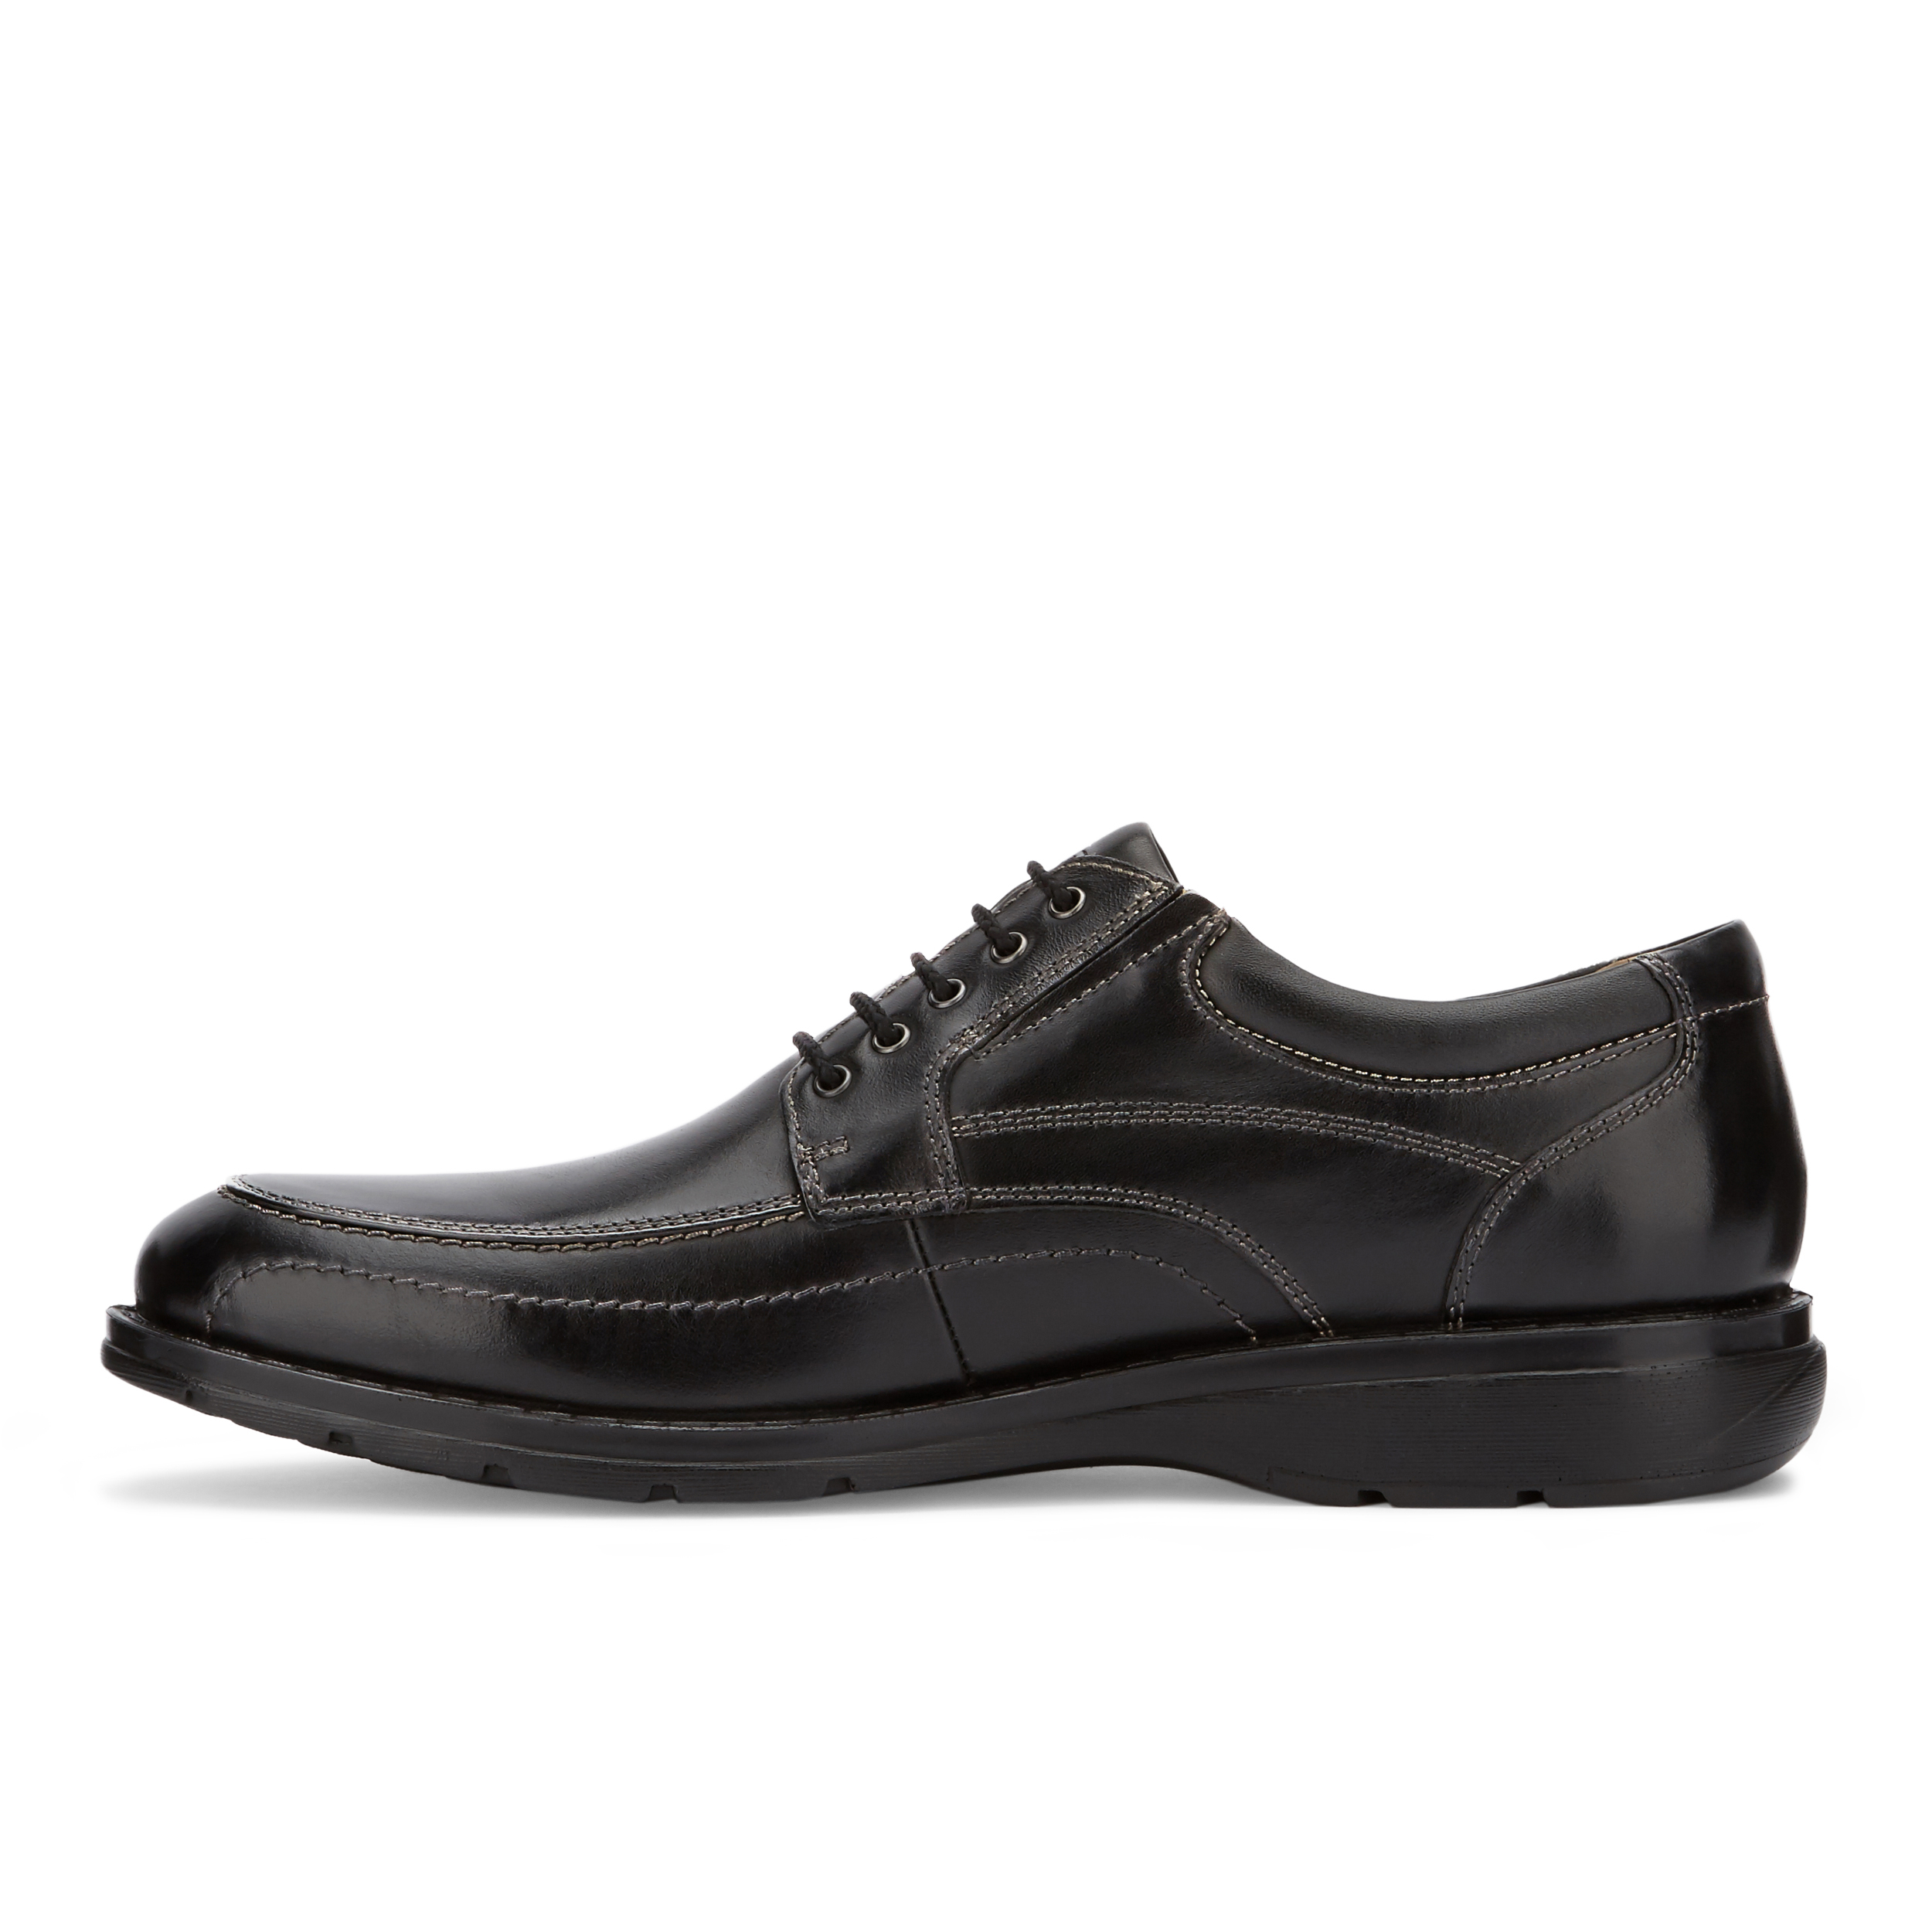 Dockers-Mens-Barker-Genuine-Leather-Dress-Casual-Lace-up-Comfort-Oxford-Shoe thumbnail 11